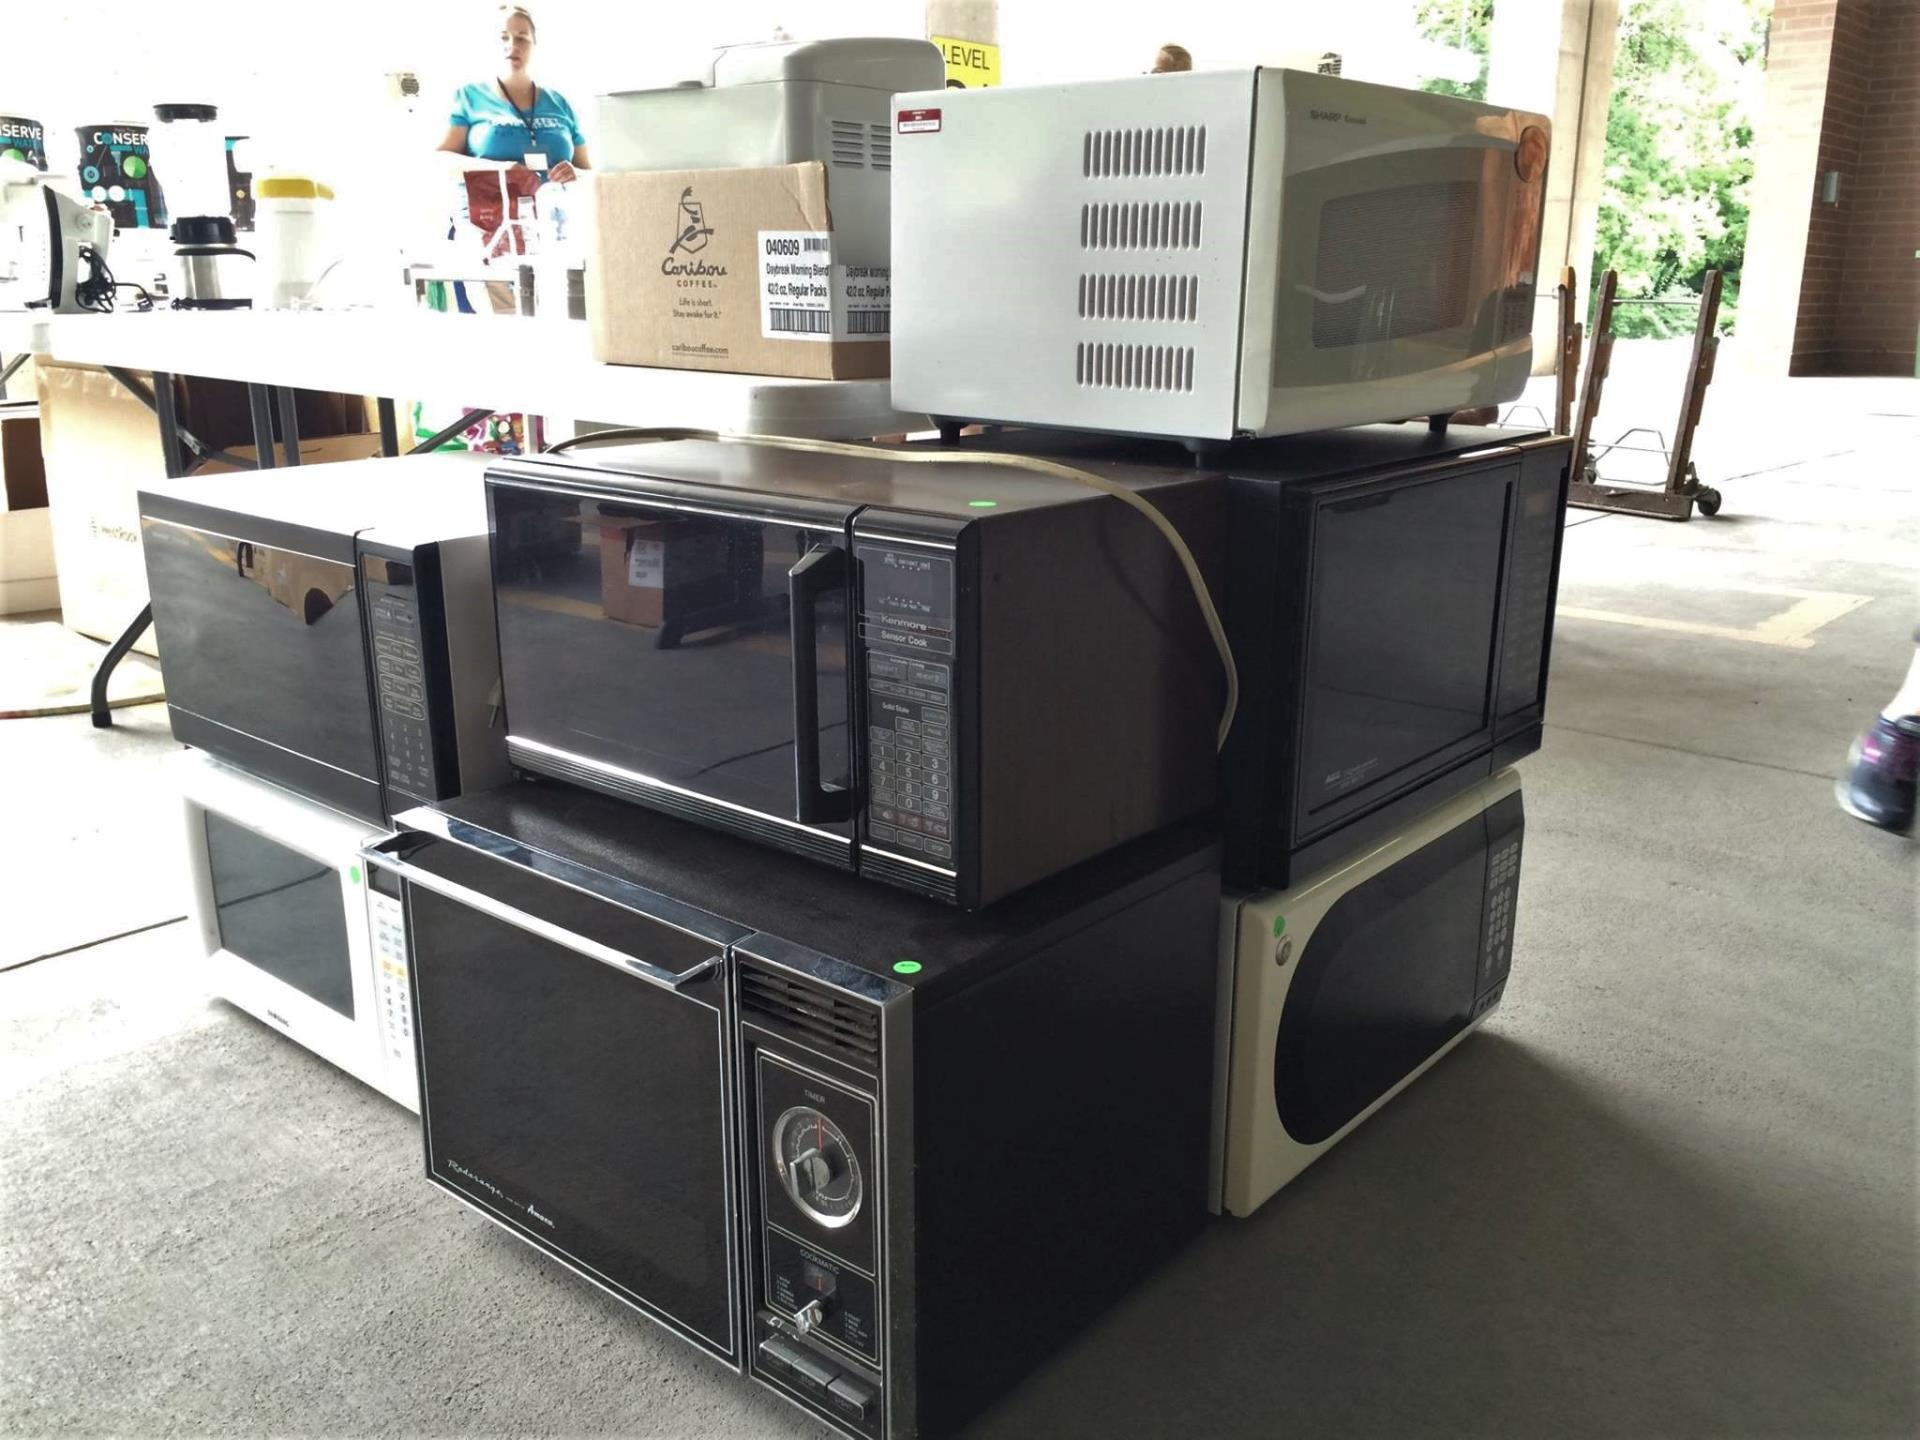 Stack of microwaves for sale at Rummage RAMPage